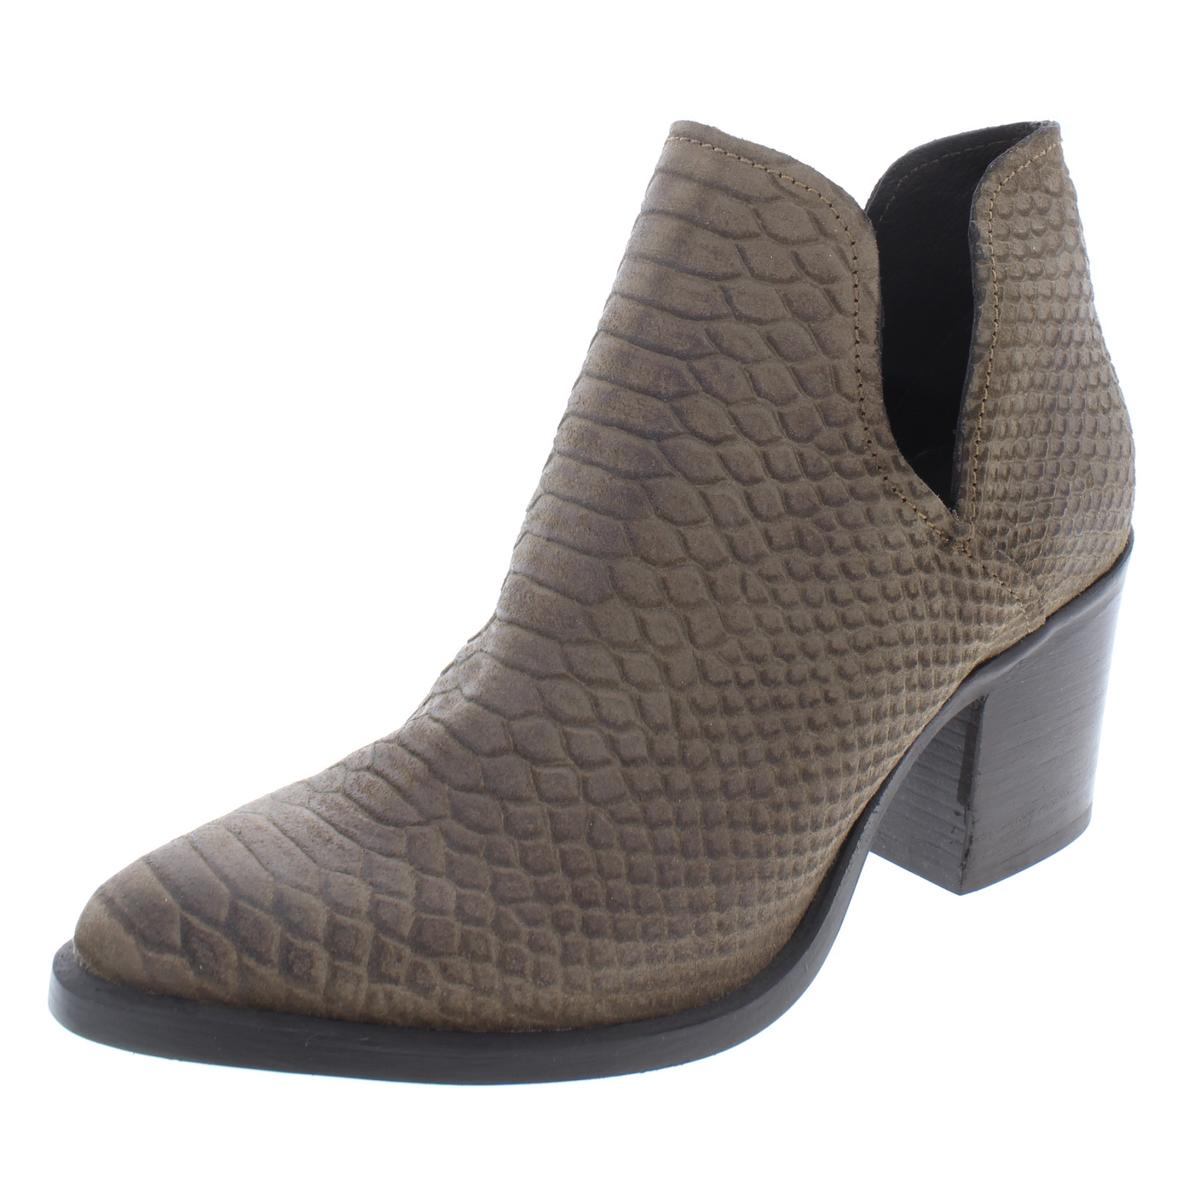 4ff02a839bd Details about Steve Madden Womens Postal Leather Almond Toe Cut-Out Booties  Shoes BHFO 0785